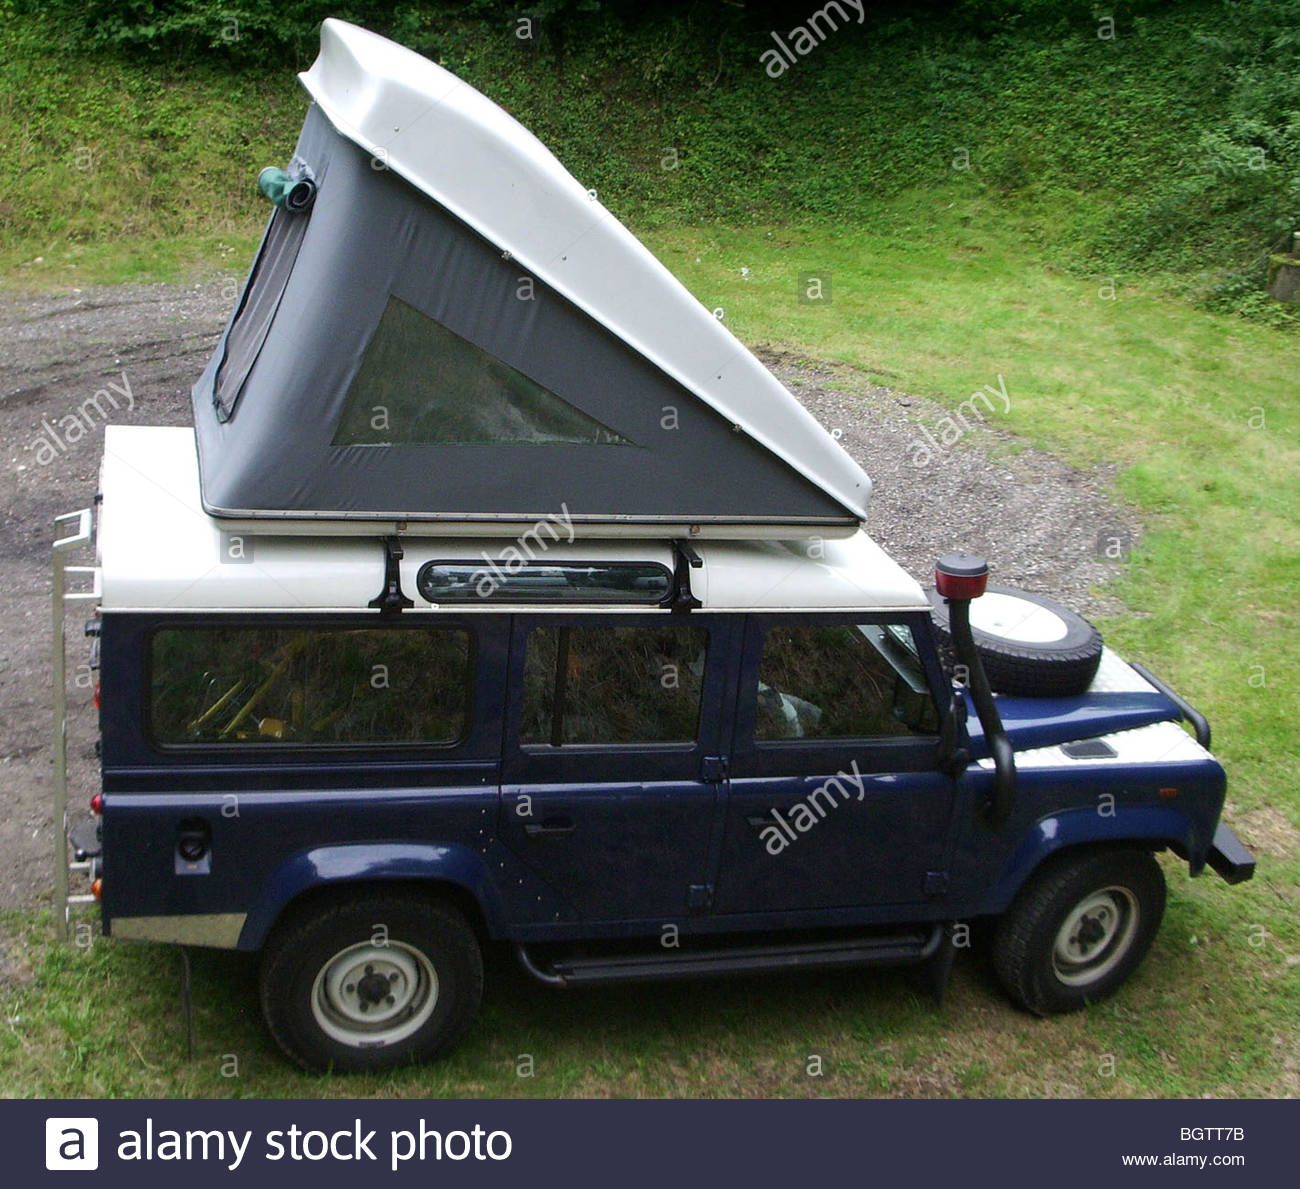 Land Rover Defender with roof tent rooftop tents c&ing c& 4x4 Germany & Land Rover Defender with roof tent rooftop tents camping camp 4x4 ...